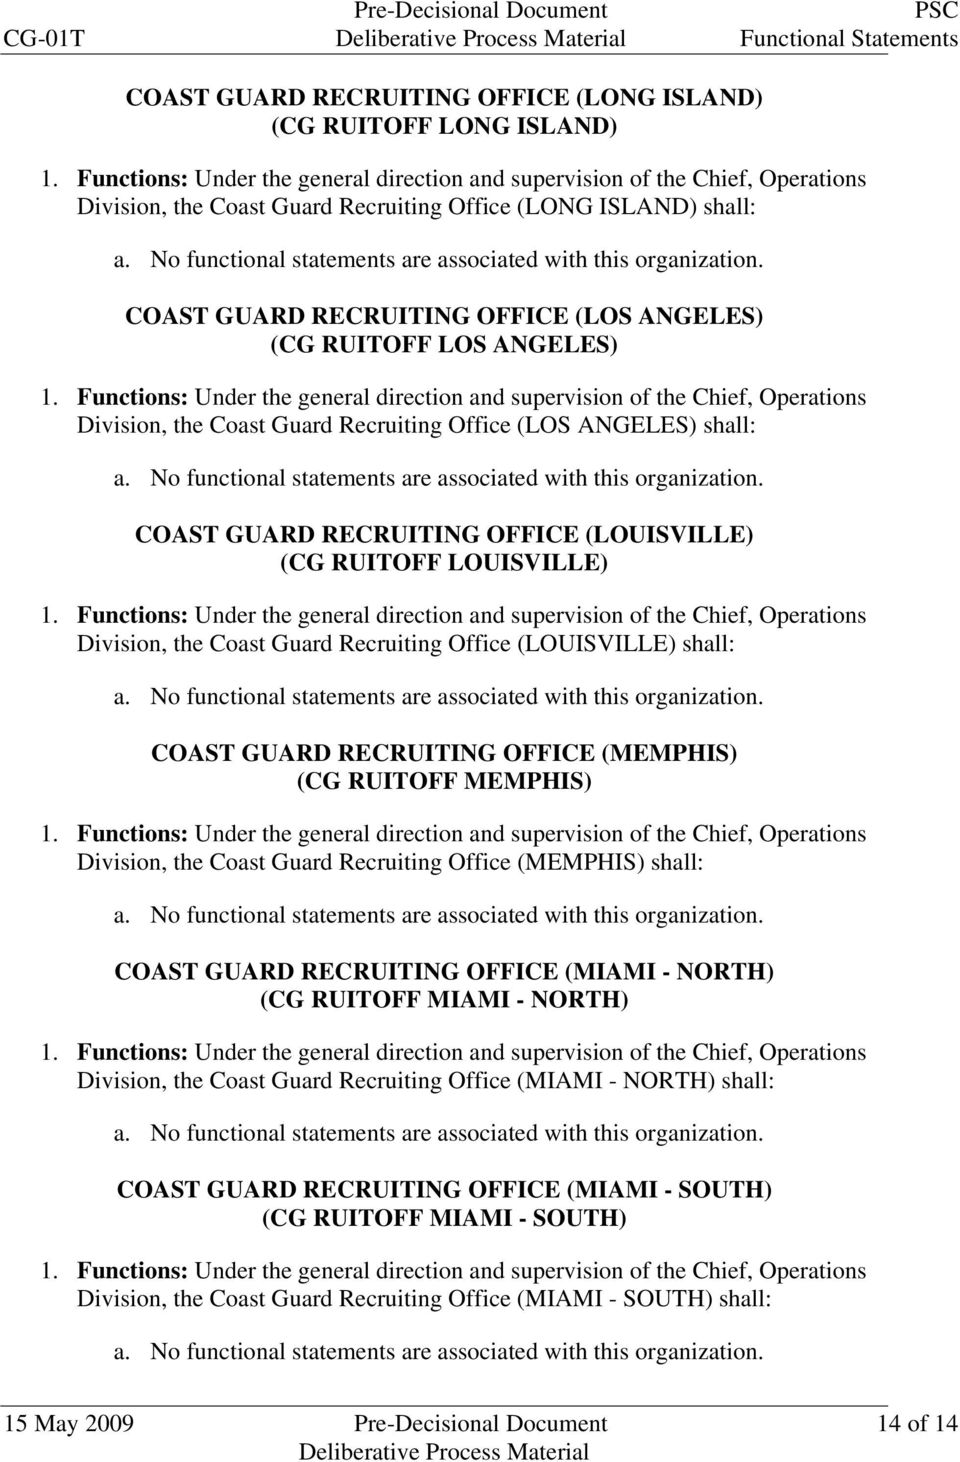 Recruiting Office (LOUISVILLE) shall: COAST GUARD RECRUITING OFFICE (MEMPHIS) (CG RUITOFF MEMPHIS) Division, the Coast Guard Recruiting Office (MEMPHIS) shall: COAST GUARD RECRUITING OFFICE (MIAMI -